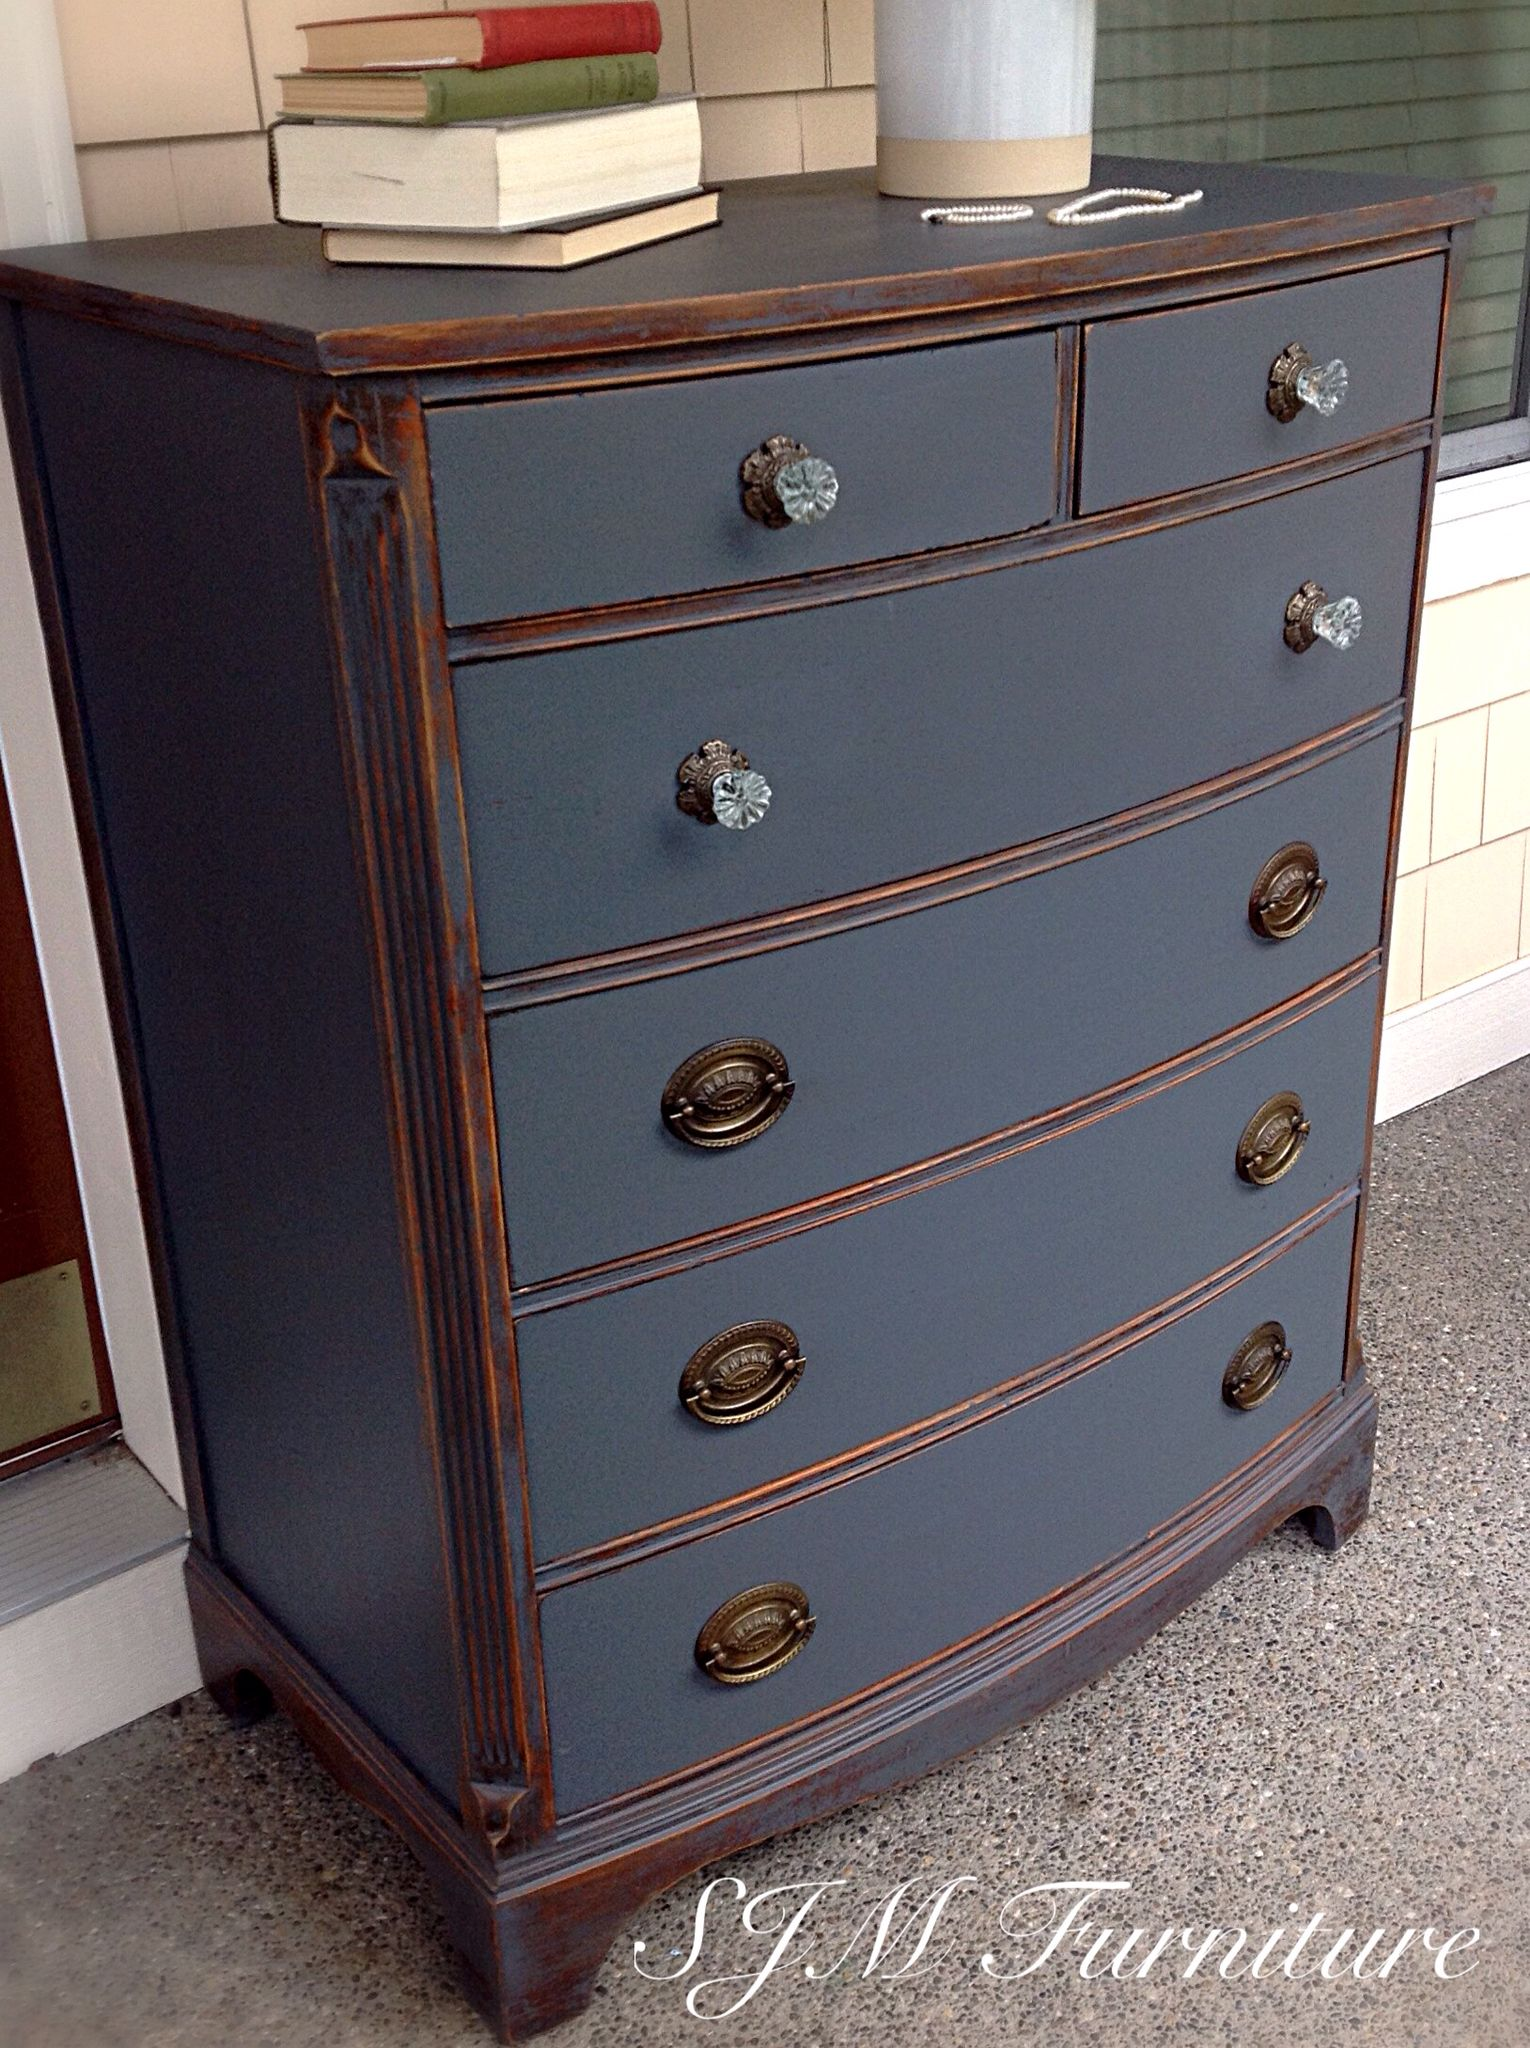 Beautiful Antique Dresser Painted In Steel Gray Chalk Paint Distressed And Sealed With Clear